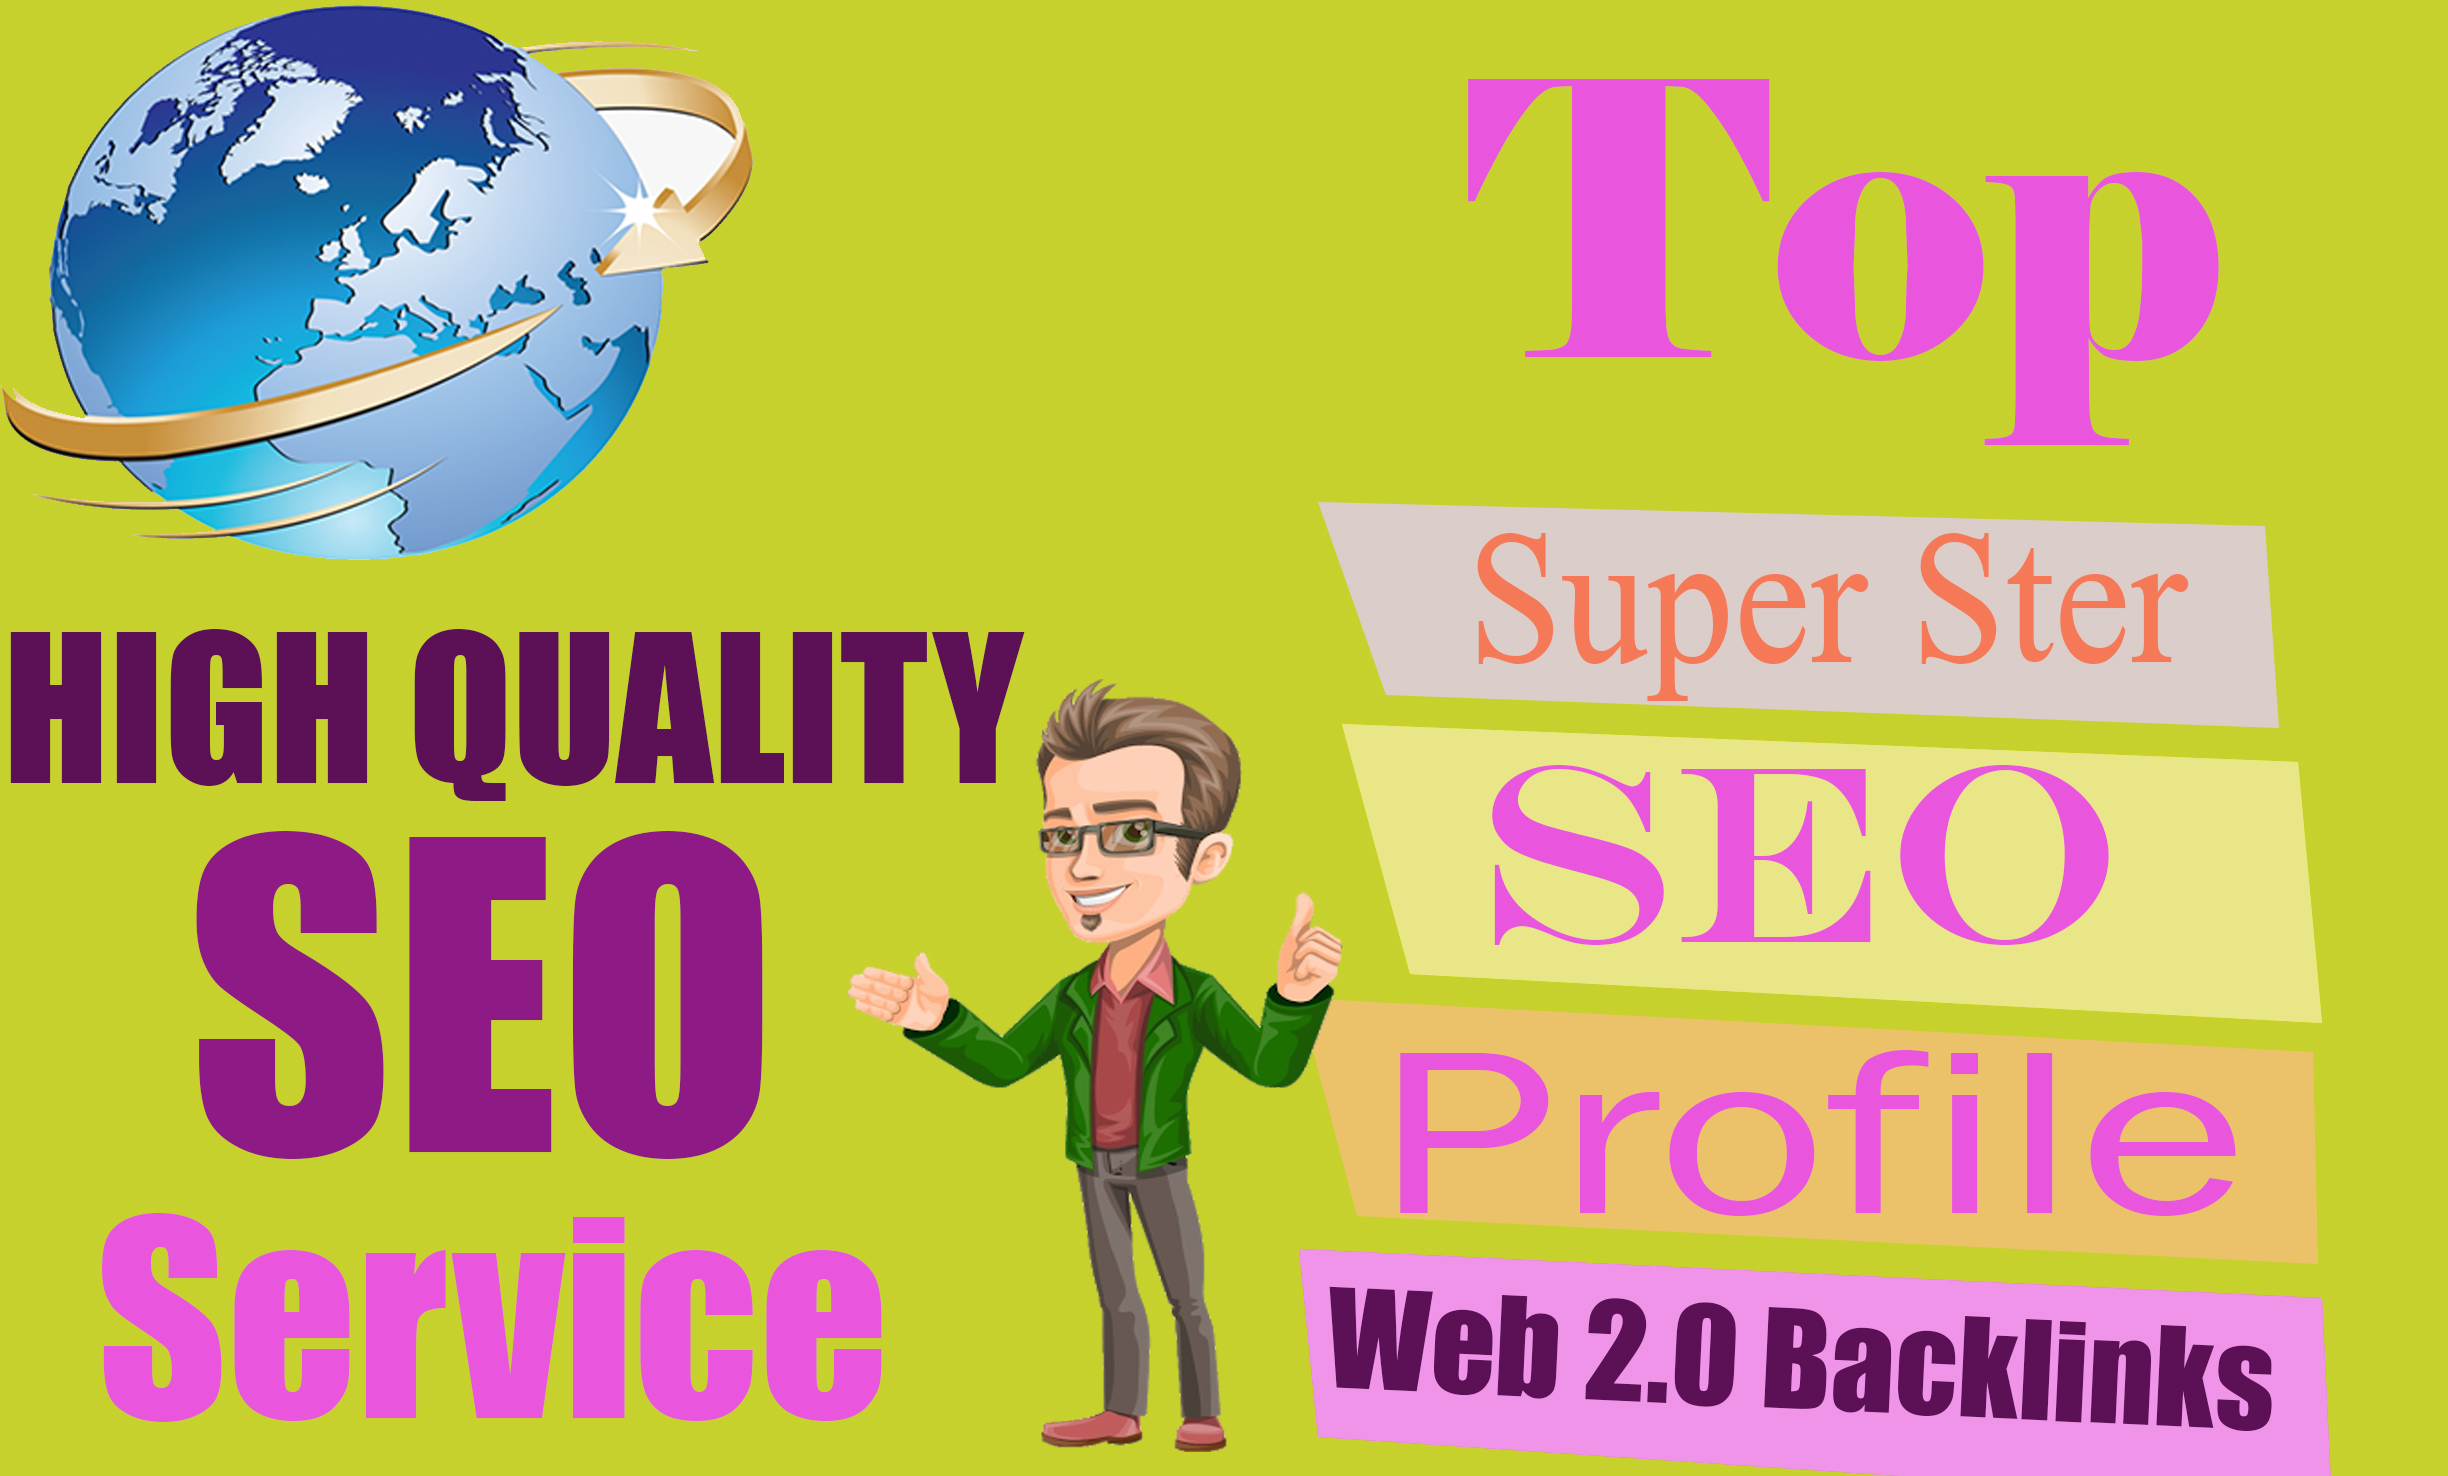 I will 1000 High Quality Profile Backlink forum profiles building service